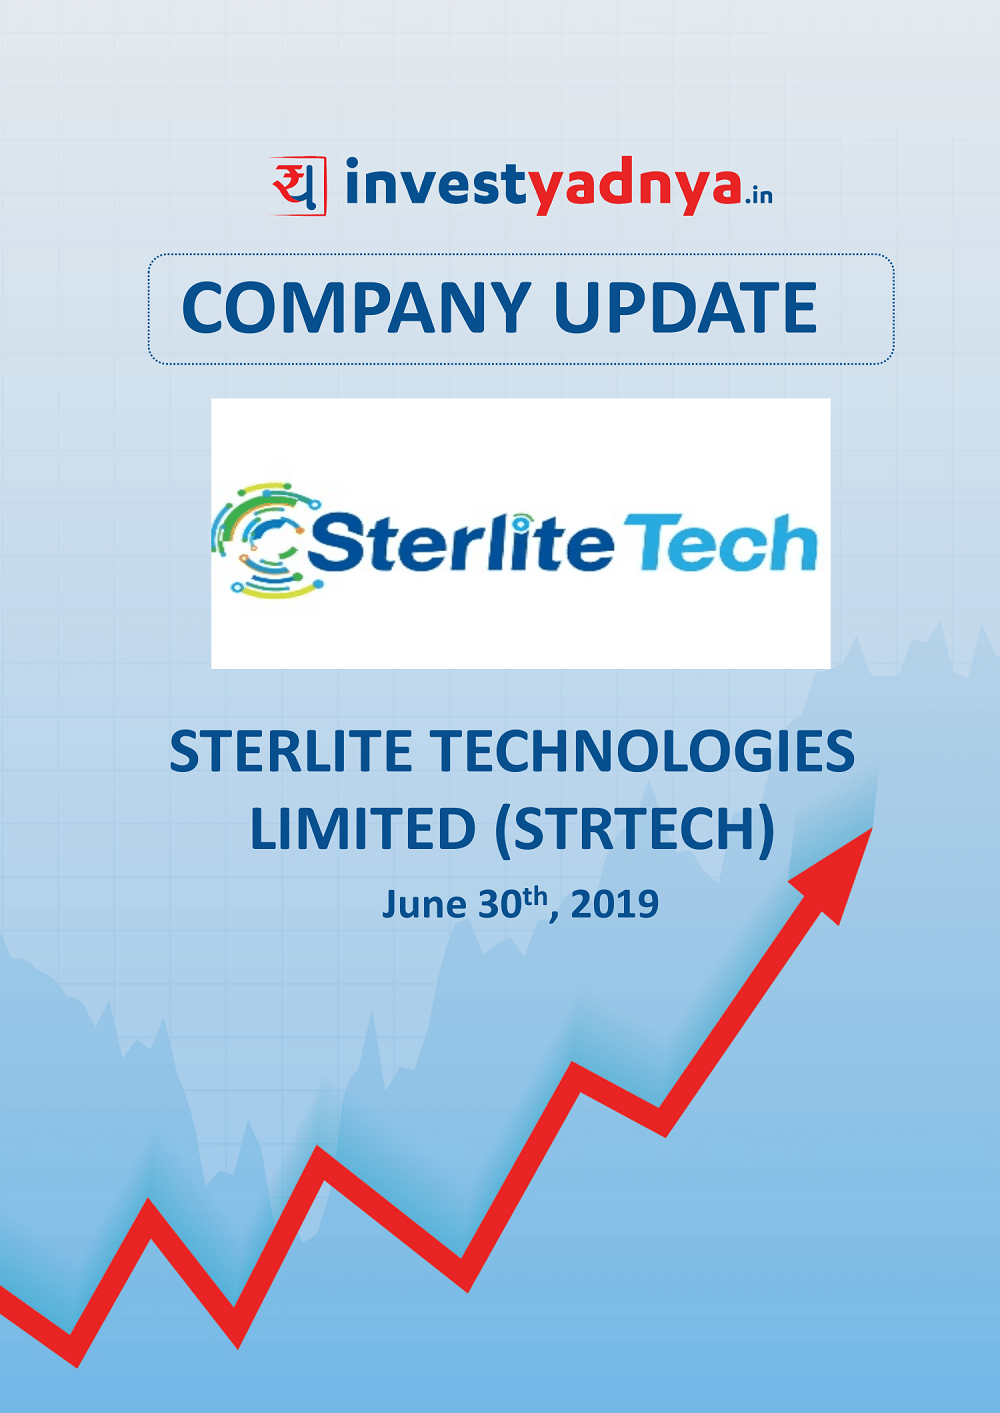 This e-book offers a detailed report on Sterlite Technologies Ltd. considering both qualitative and financial perspectives. It reviews the company's Q4 results. ✔ Detailed Research ✔ Quality Reports